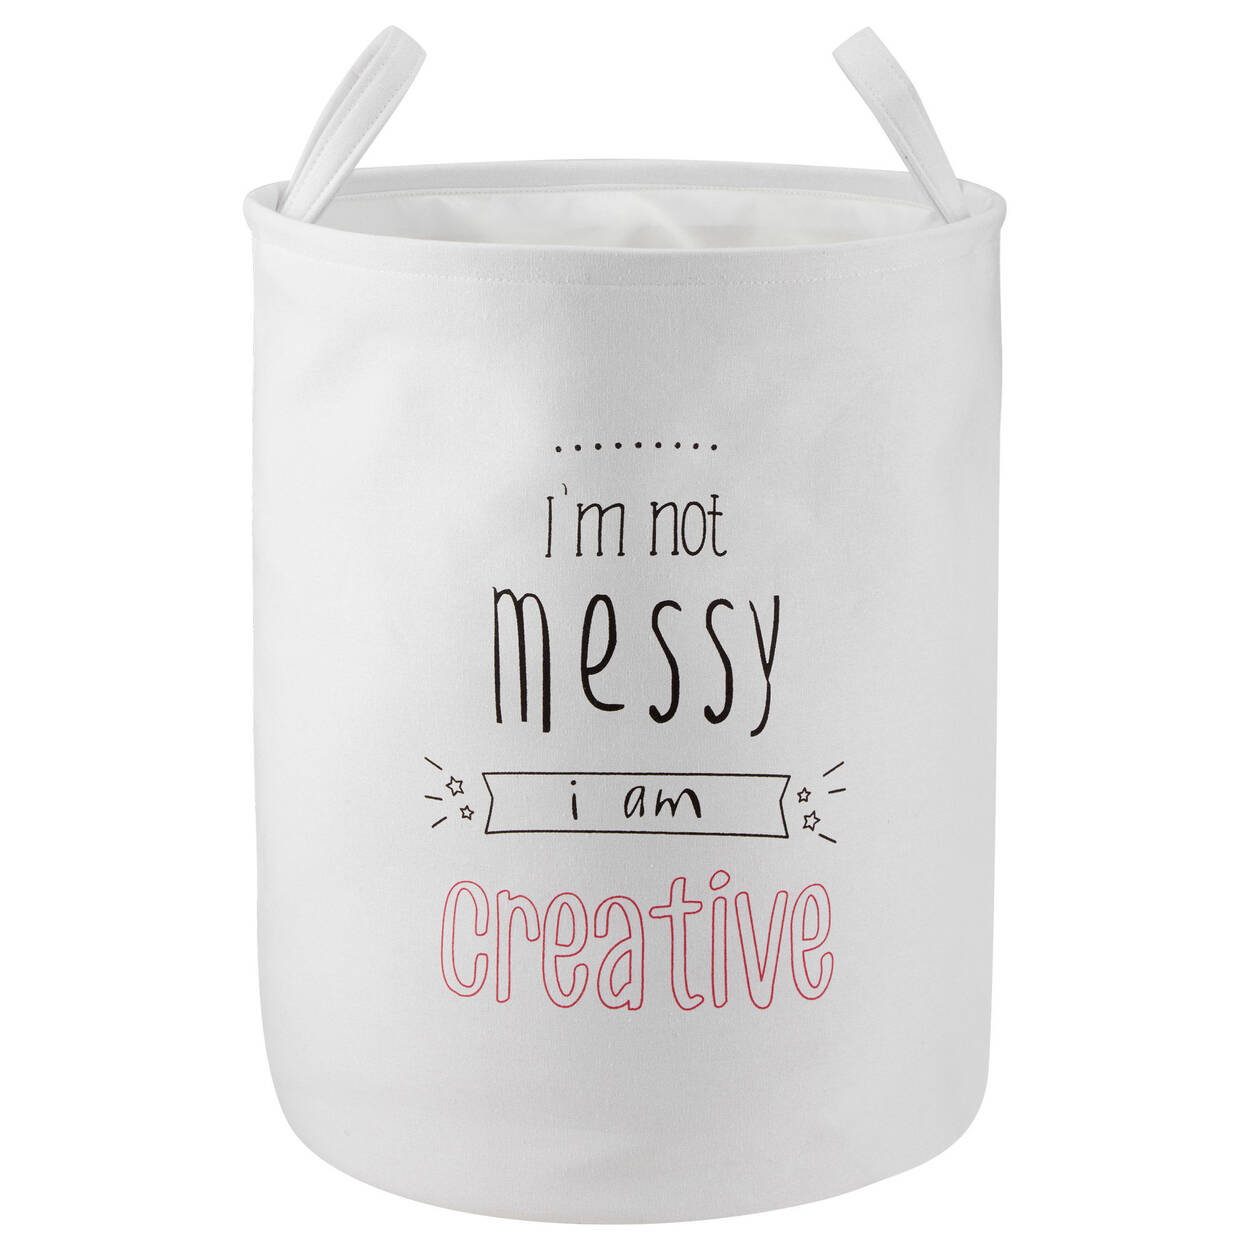 Messy Two-Sided Hamper